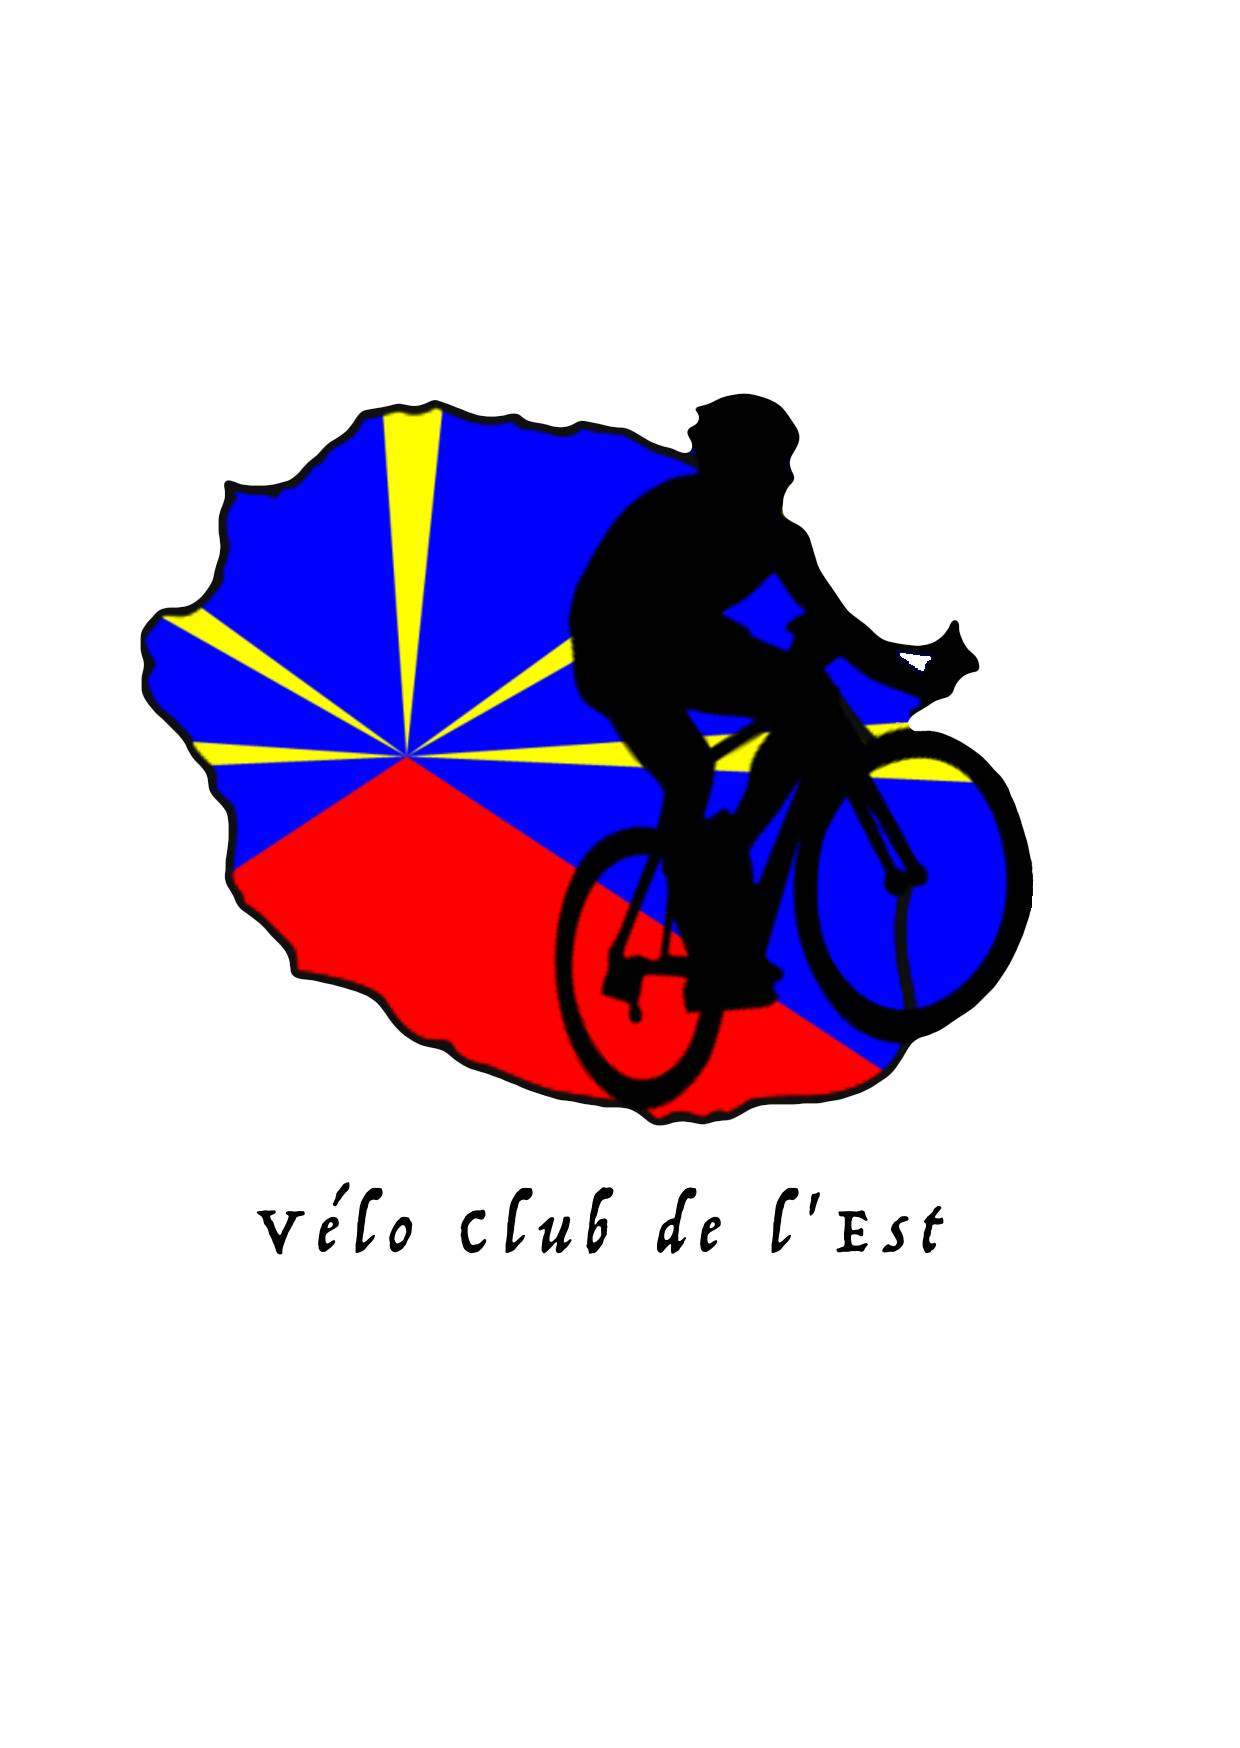 images/Clubs/VCE.jpg